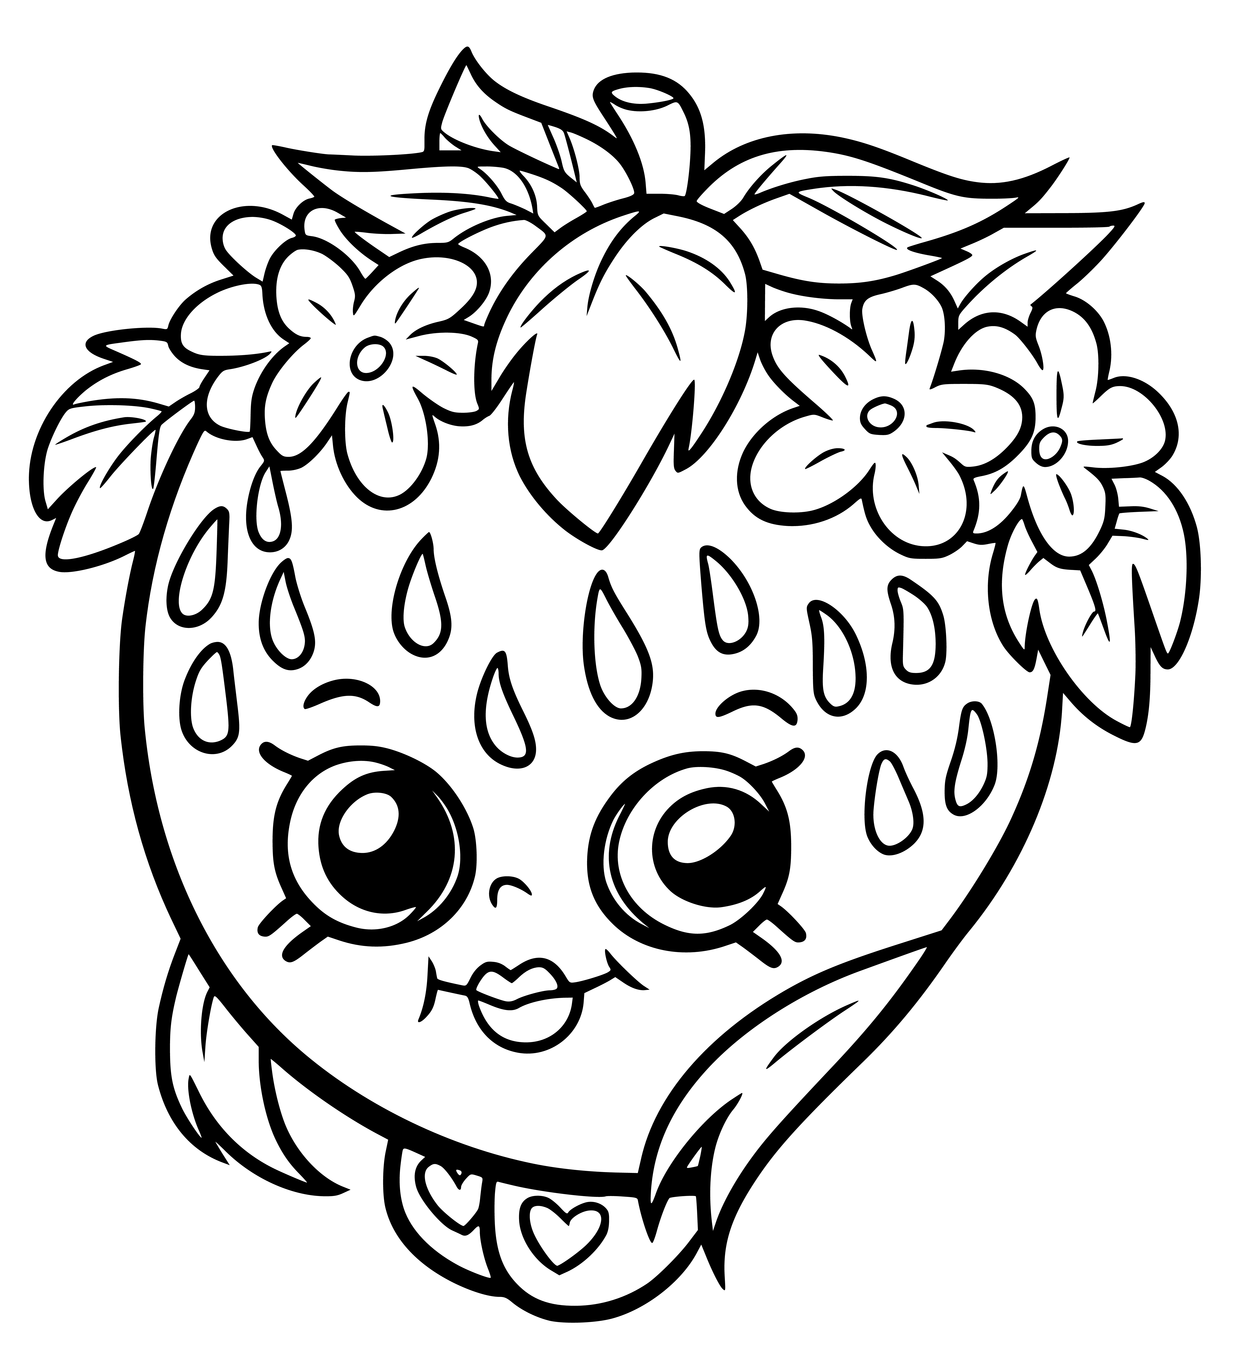 - Shopkins Season 7 Strawberry Coloring Page Shopkins Colouring